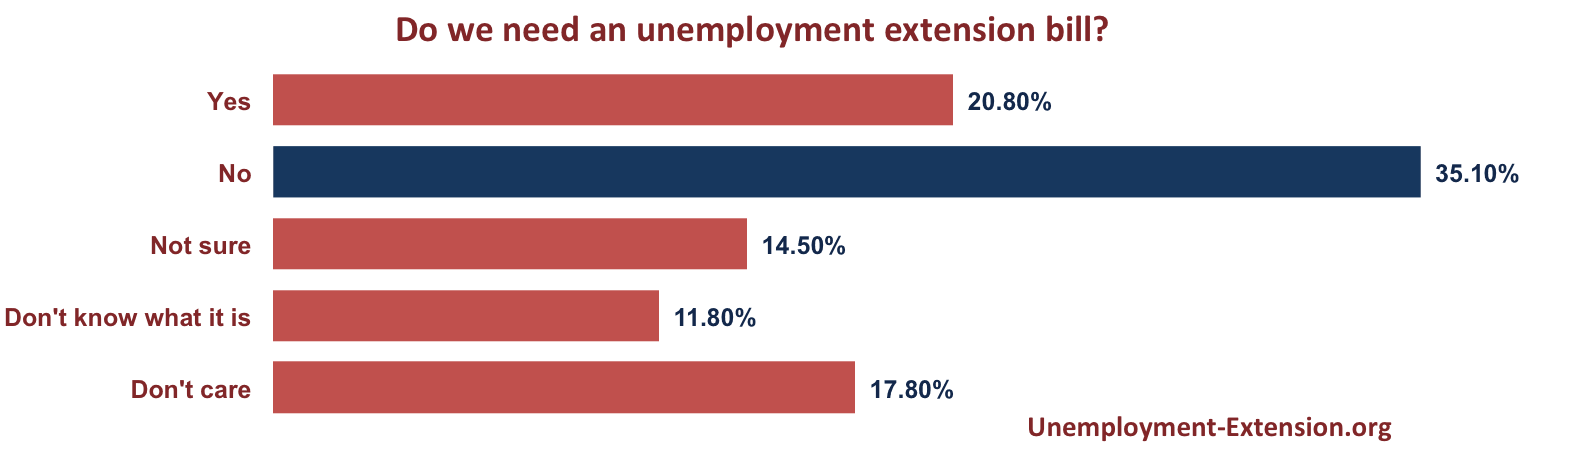 Do we need an unemployment extension bill - US adult internet population survey cunducted on September 12, 2014